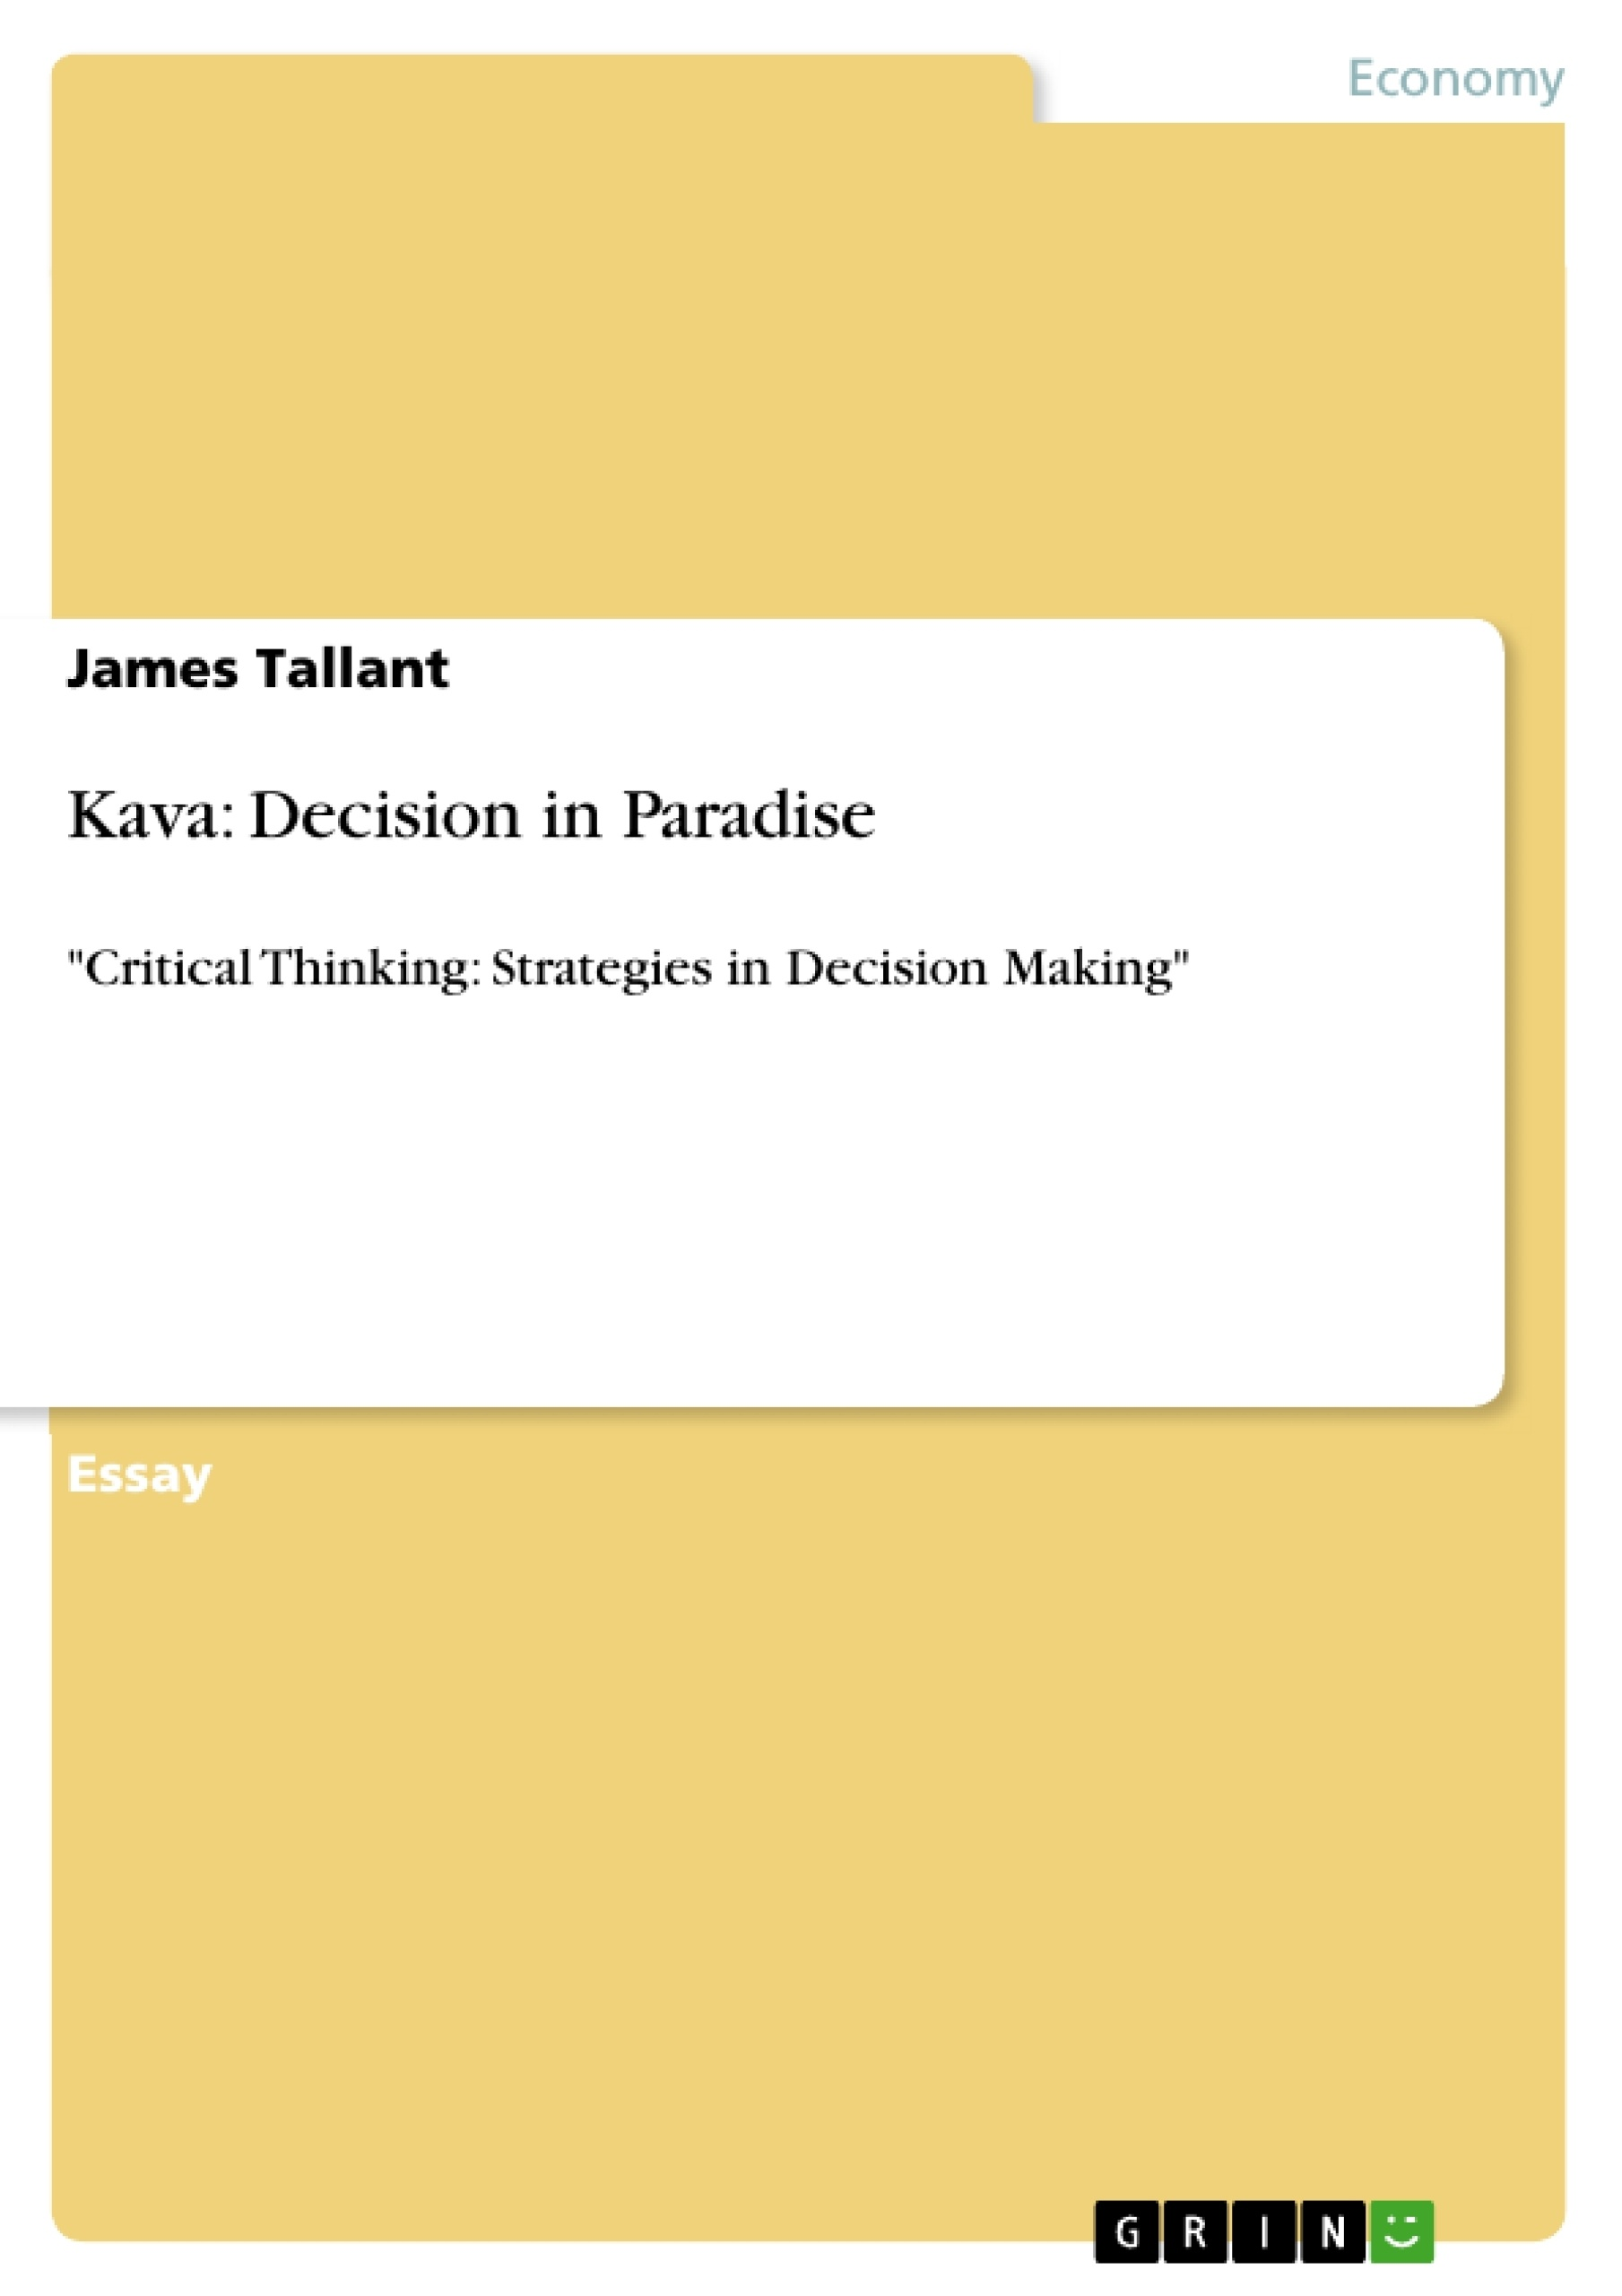 doctoral thesis on kava